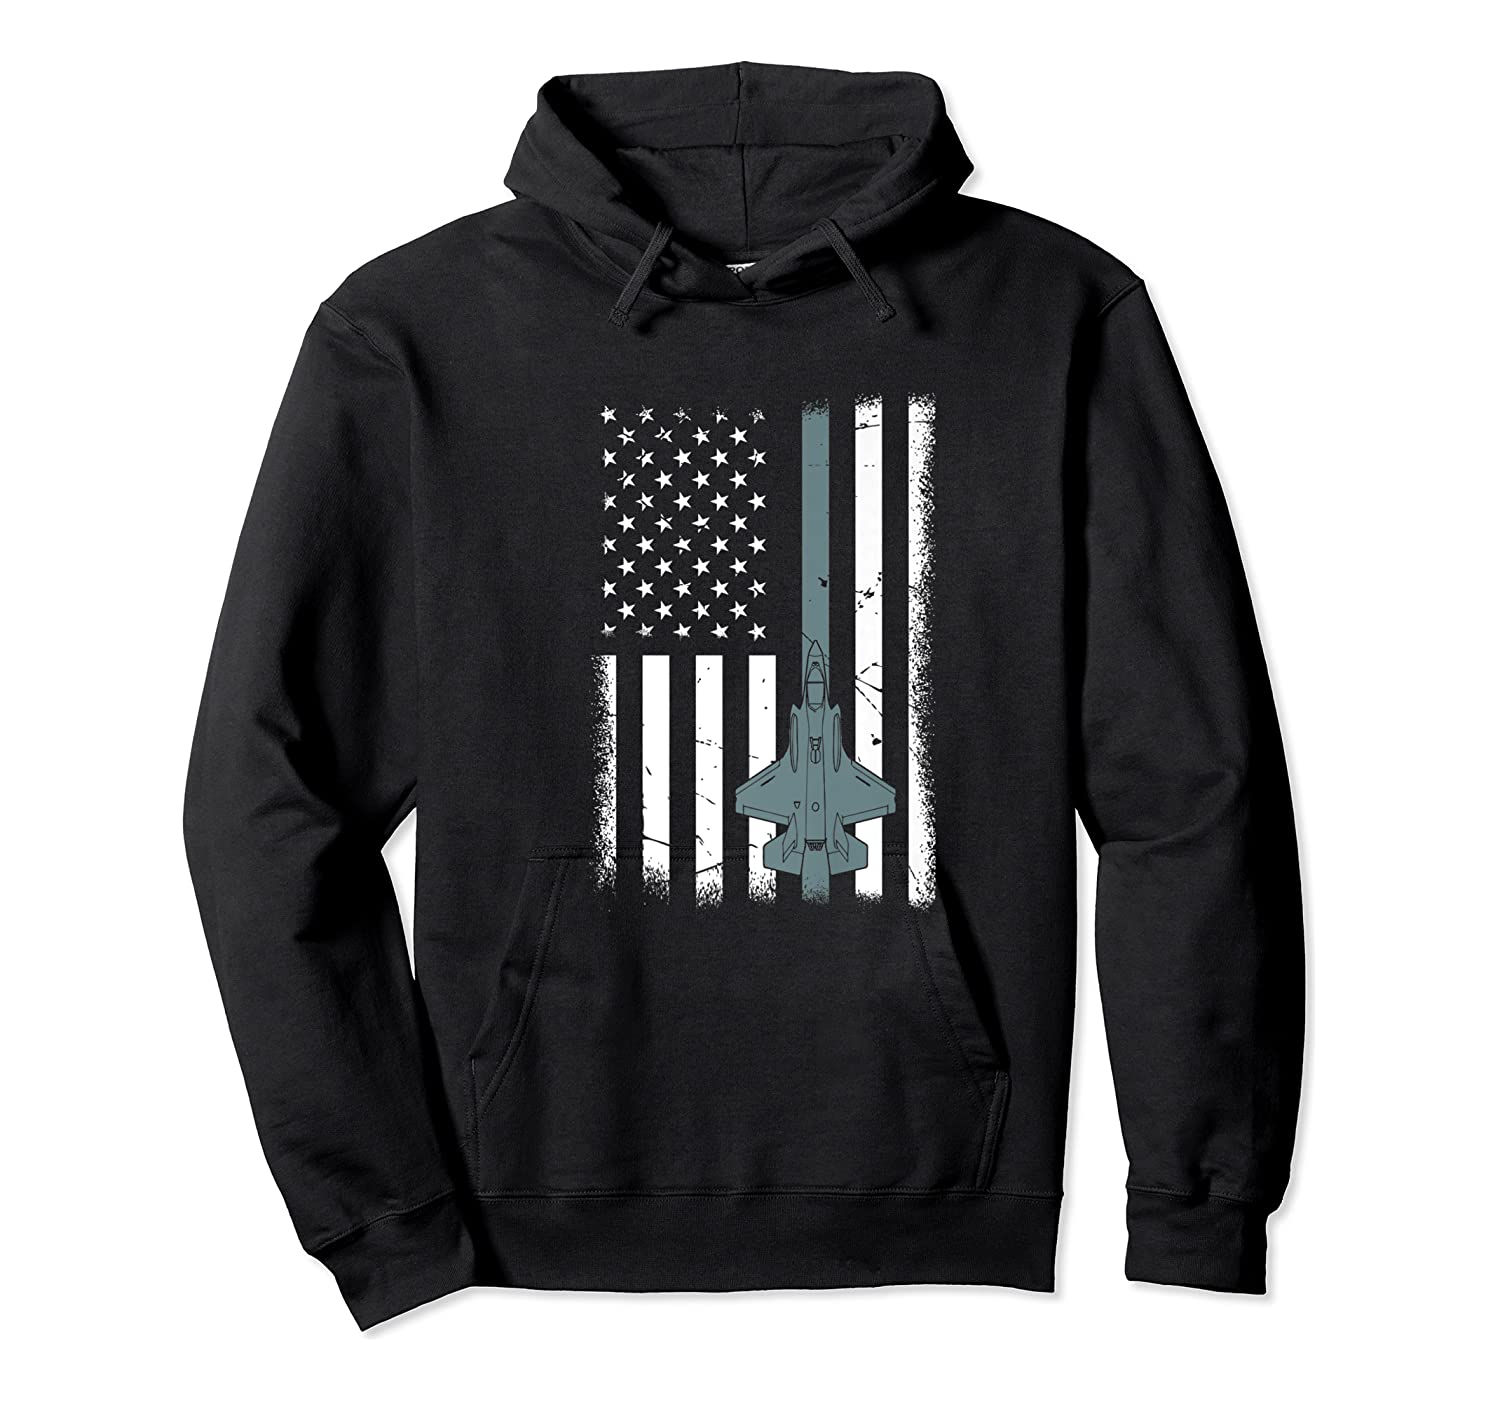 United States F35 Fighter Jet American Flag Veteran Shirts Unisex Pullover Hoodie